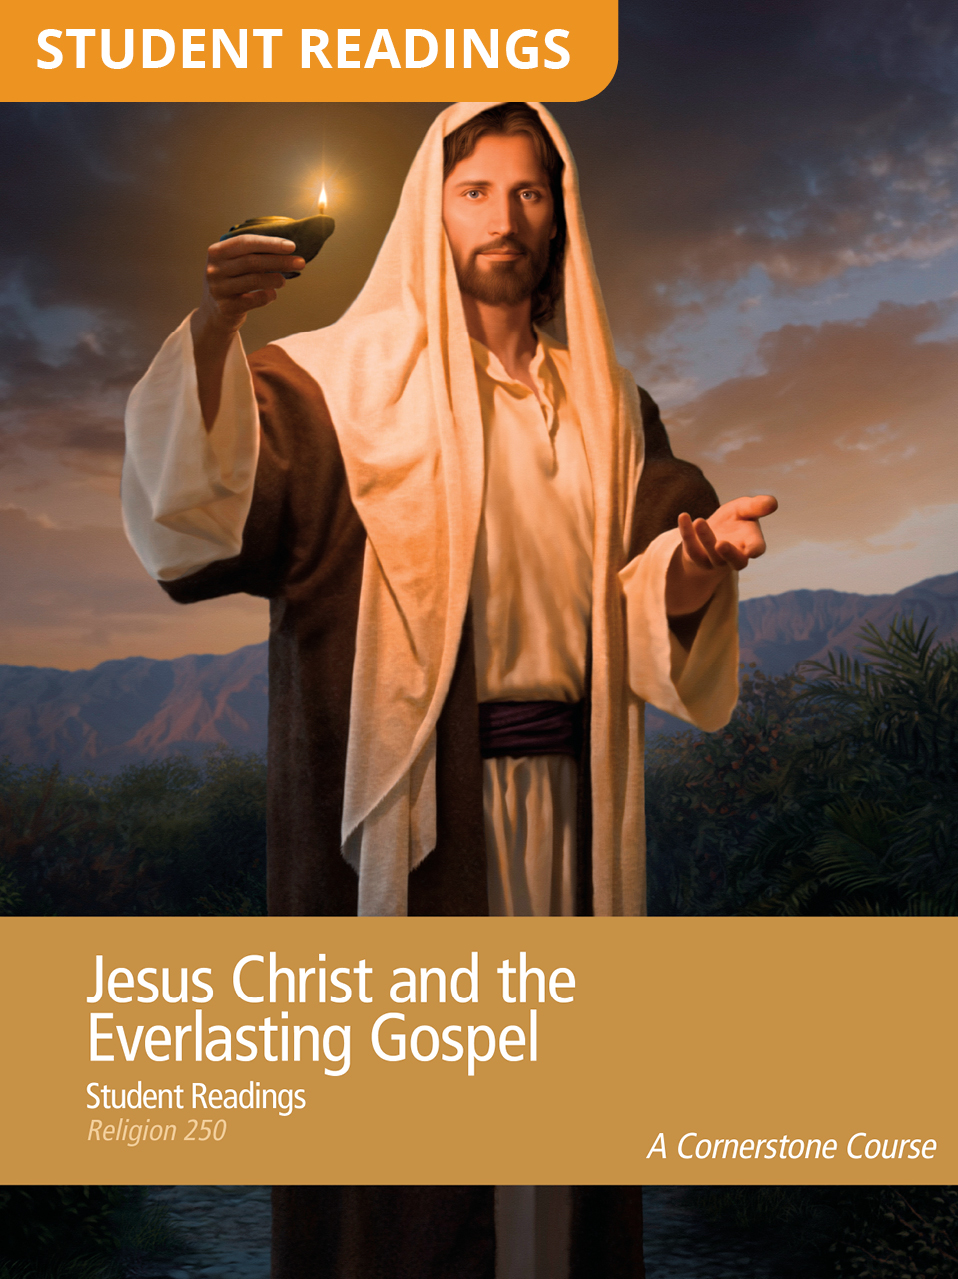 Jesus Christ and the Everlasting Gospel Student Readings (Rel 250)